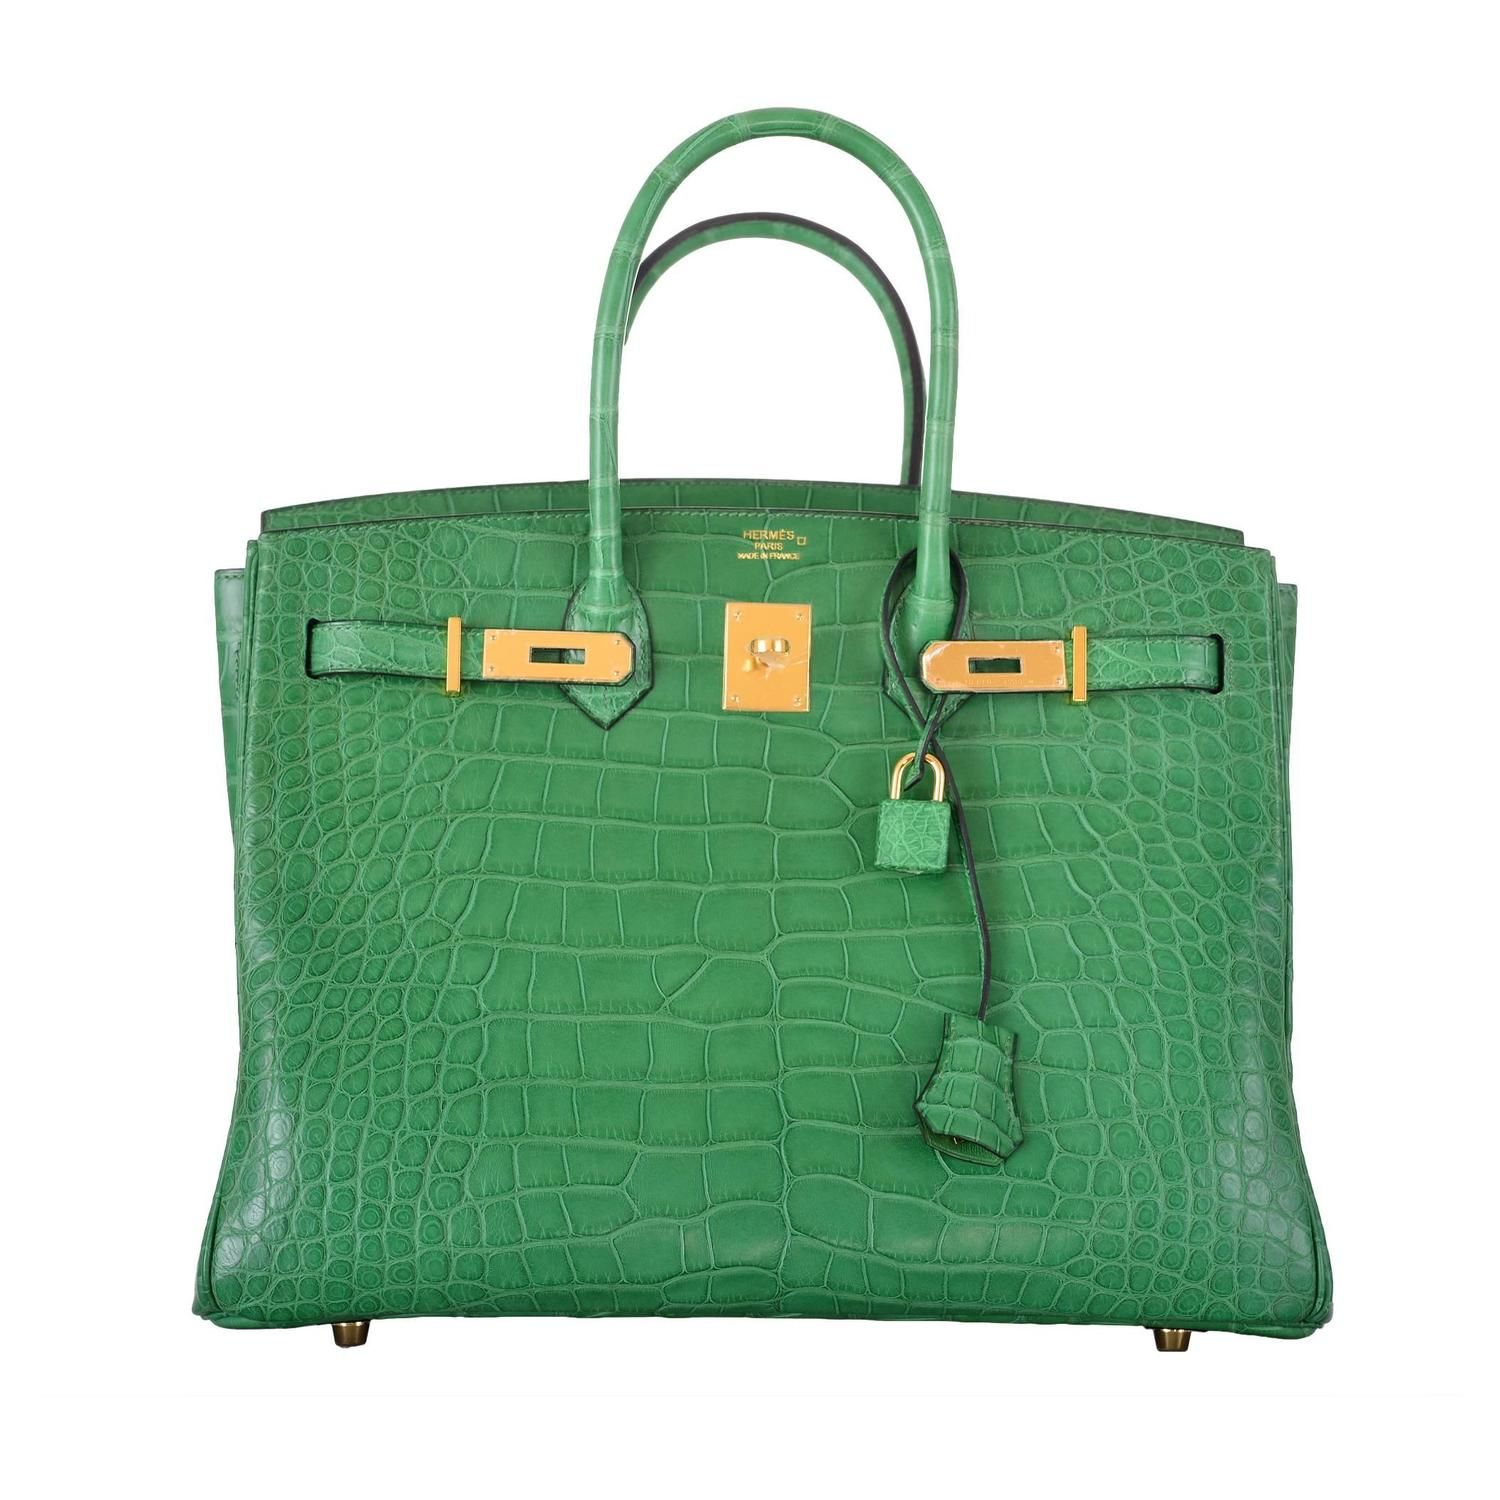 cdcb36b38469a HERMES BIRKIN BAG 35CM ALLIGATOR CACTUS GOLD HARDWARE JaneFinds ...